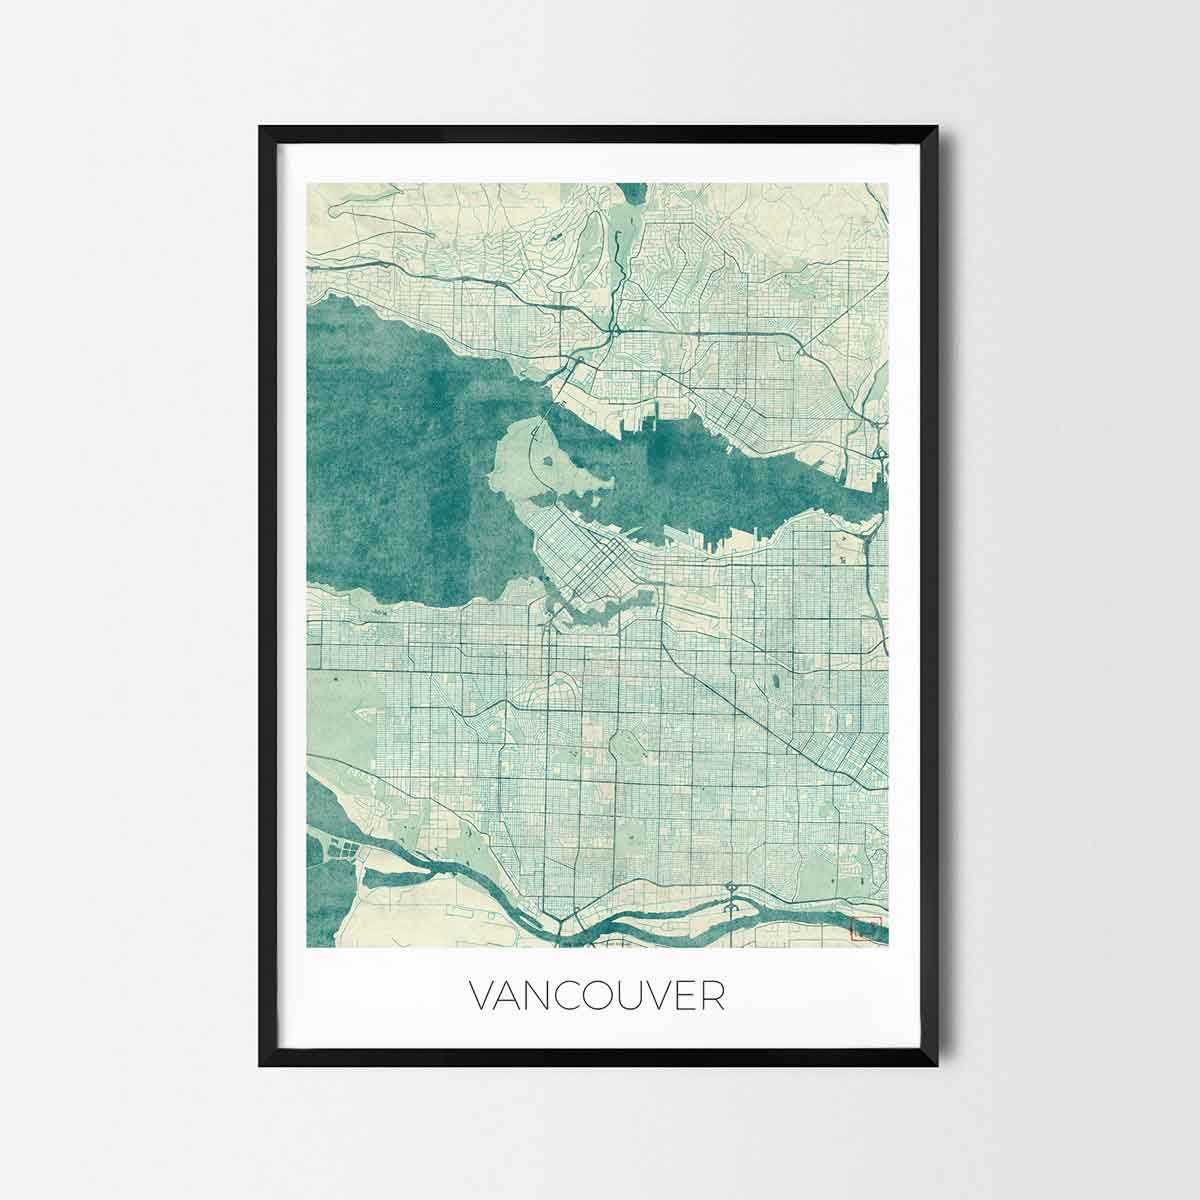 Vancouver art posters city art map posters and prints art posters vancouver art posters and prints of your favorite city unique design of vancouver map gumiabroncs Choice Image